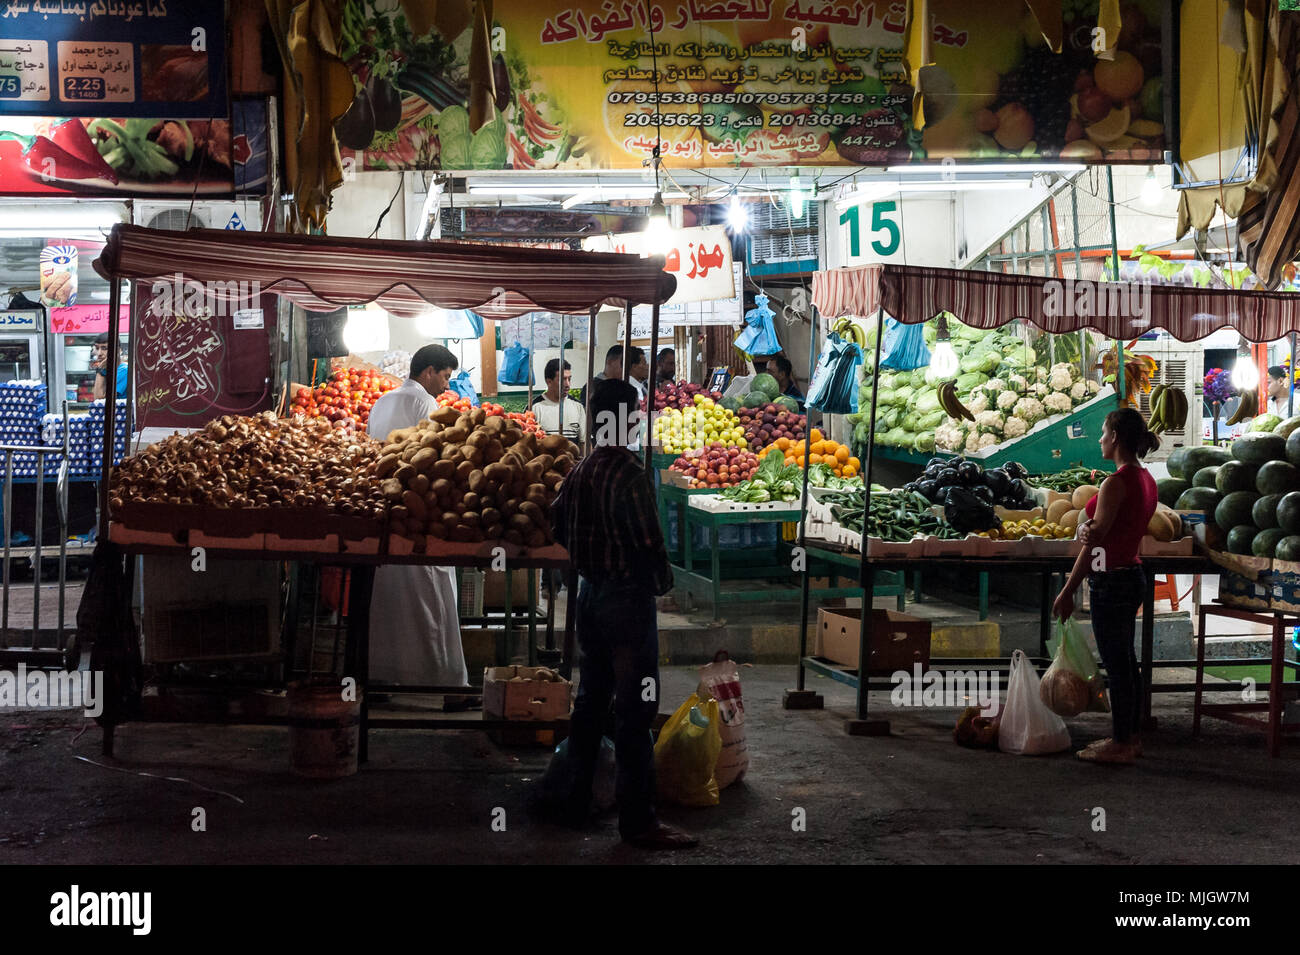 Evening market in Aqaba,al-ʻAqabah, 'the Obstacle' a Jordanian coastal city situated at the northeastern tip of the Red Sea. - Stock Image